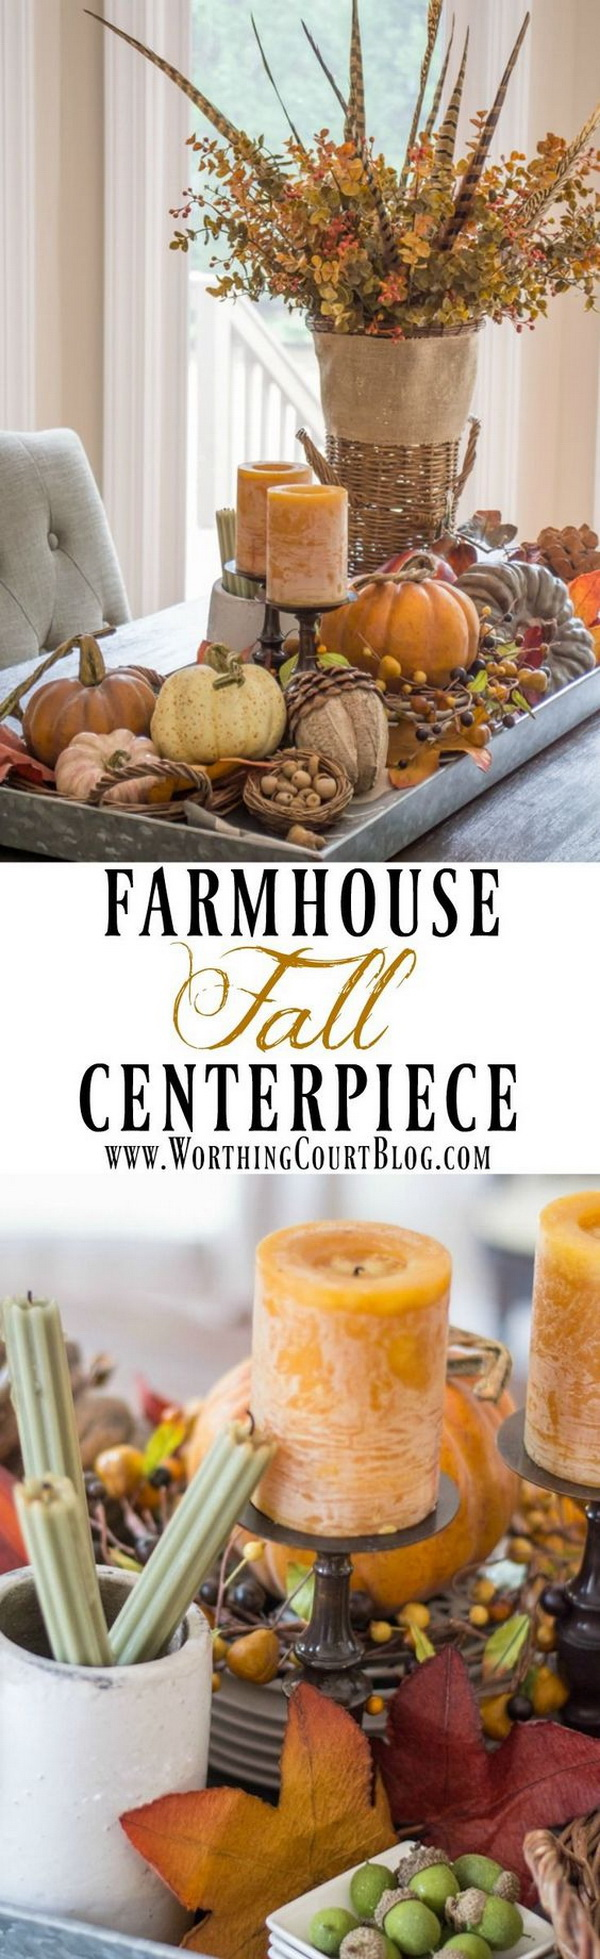 Rustic Farmhouse Fall Centerpiece. Get a galvanized metal tray filled with fall textures and colors. This will be the the perfect rustic farmhouse fall centerpiece.